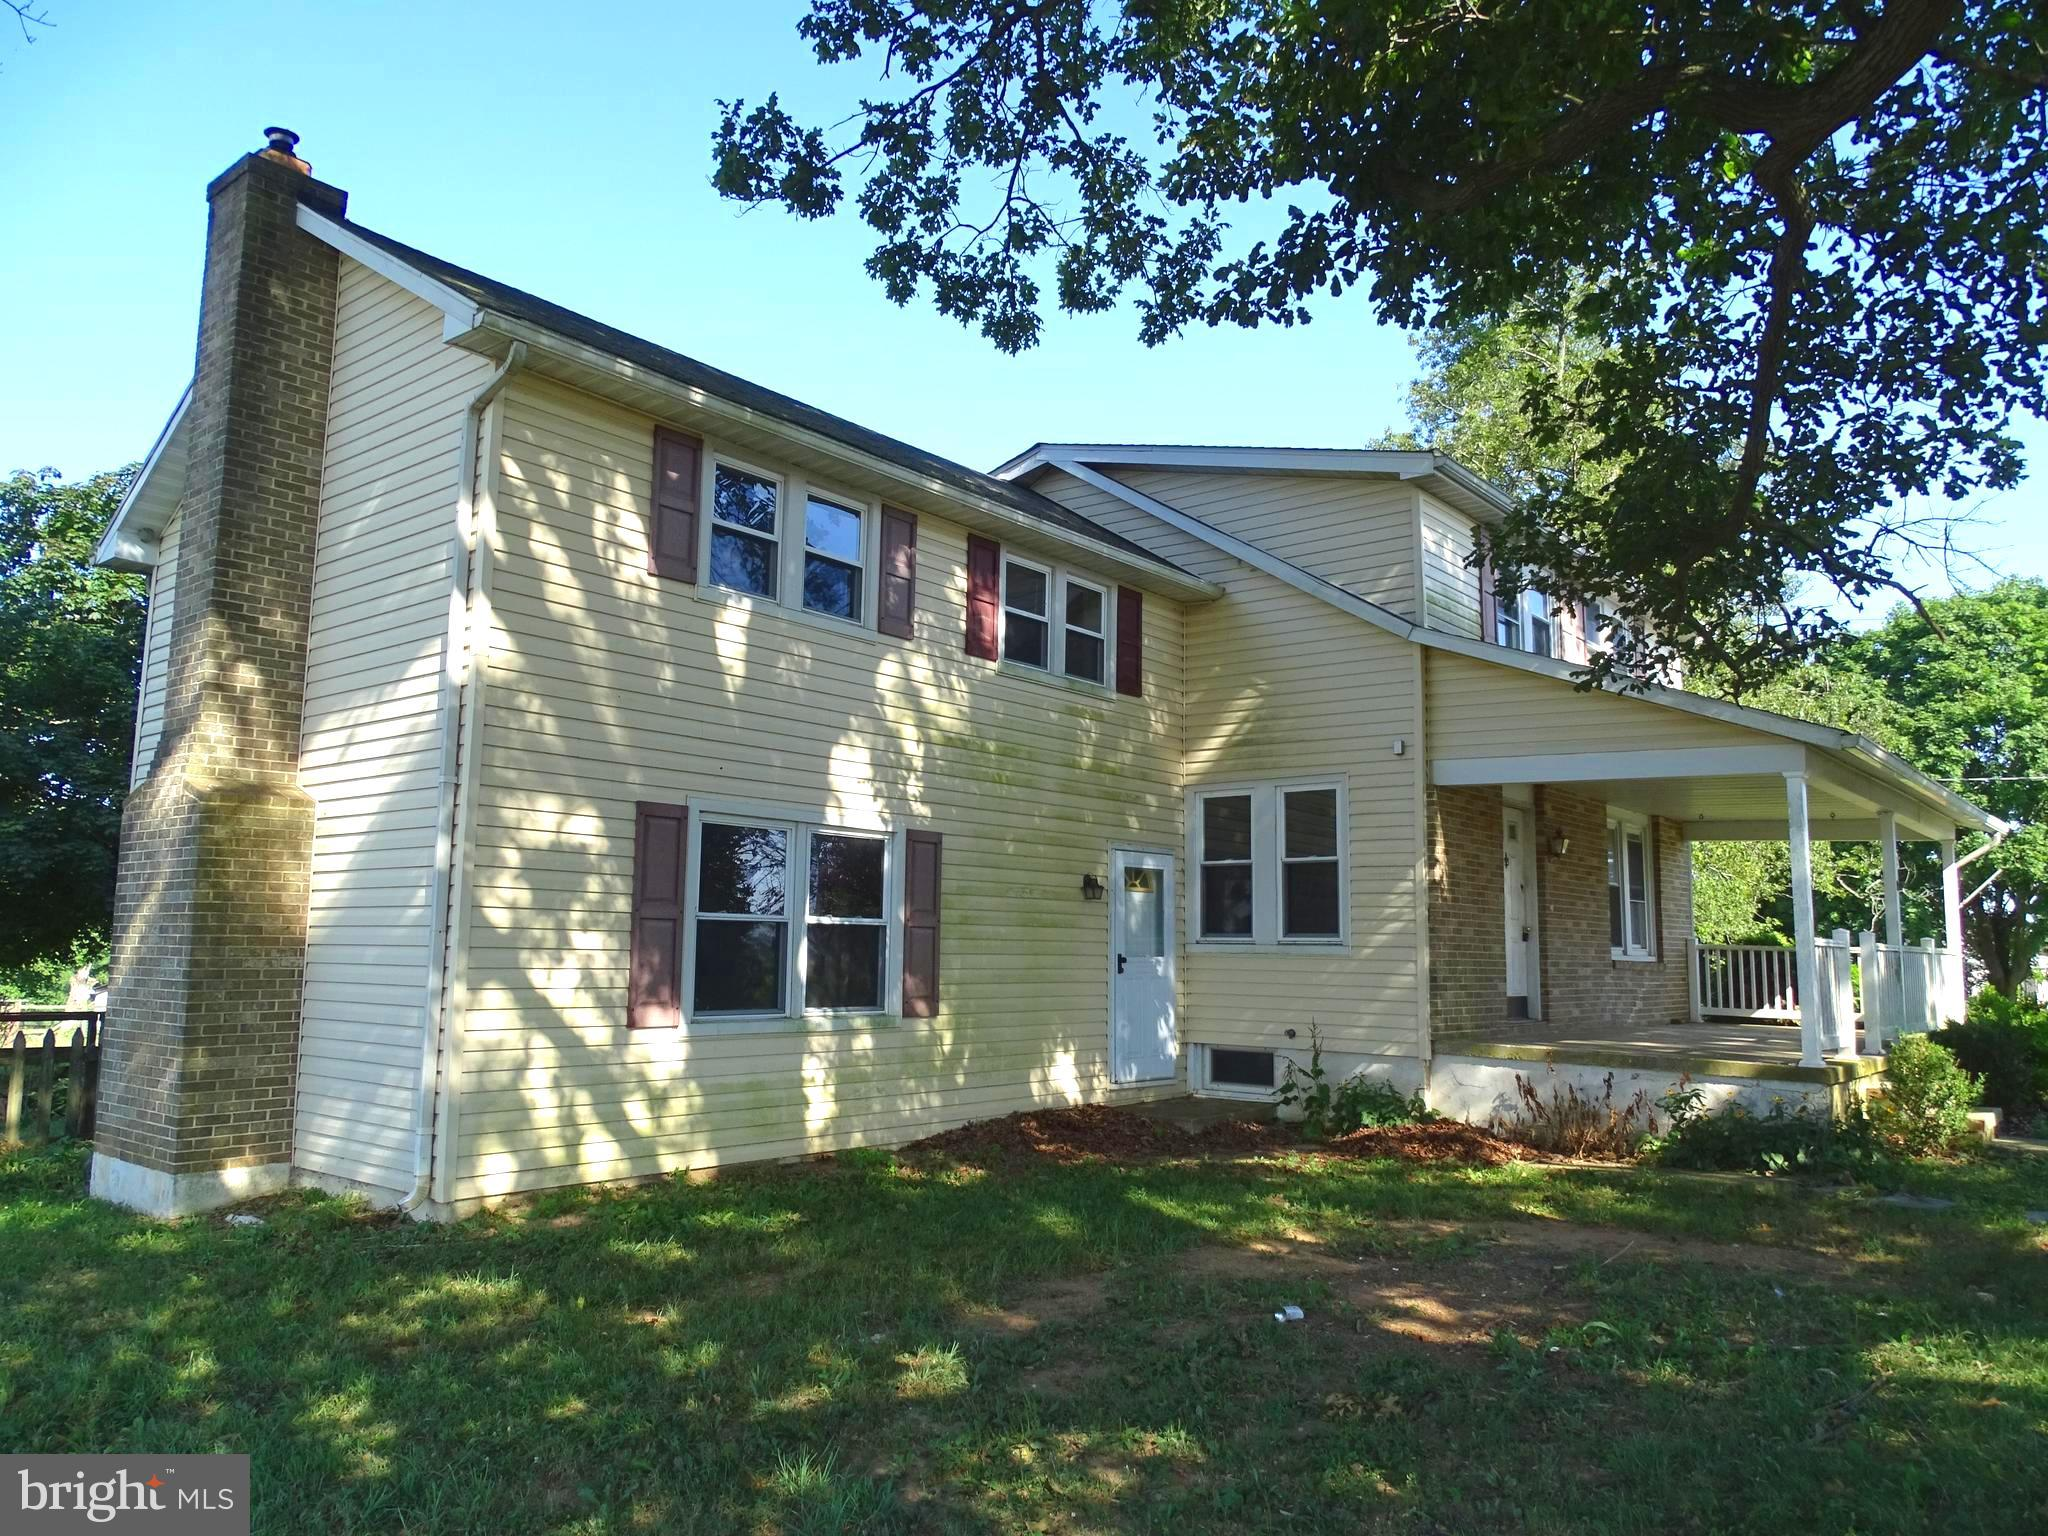 16608 W LIBERTY ROAD, STEWARTSTOWN, PA 17363